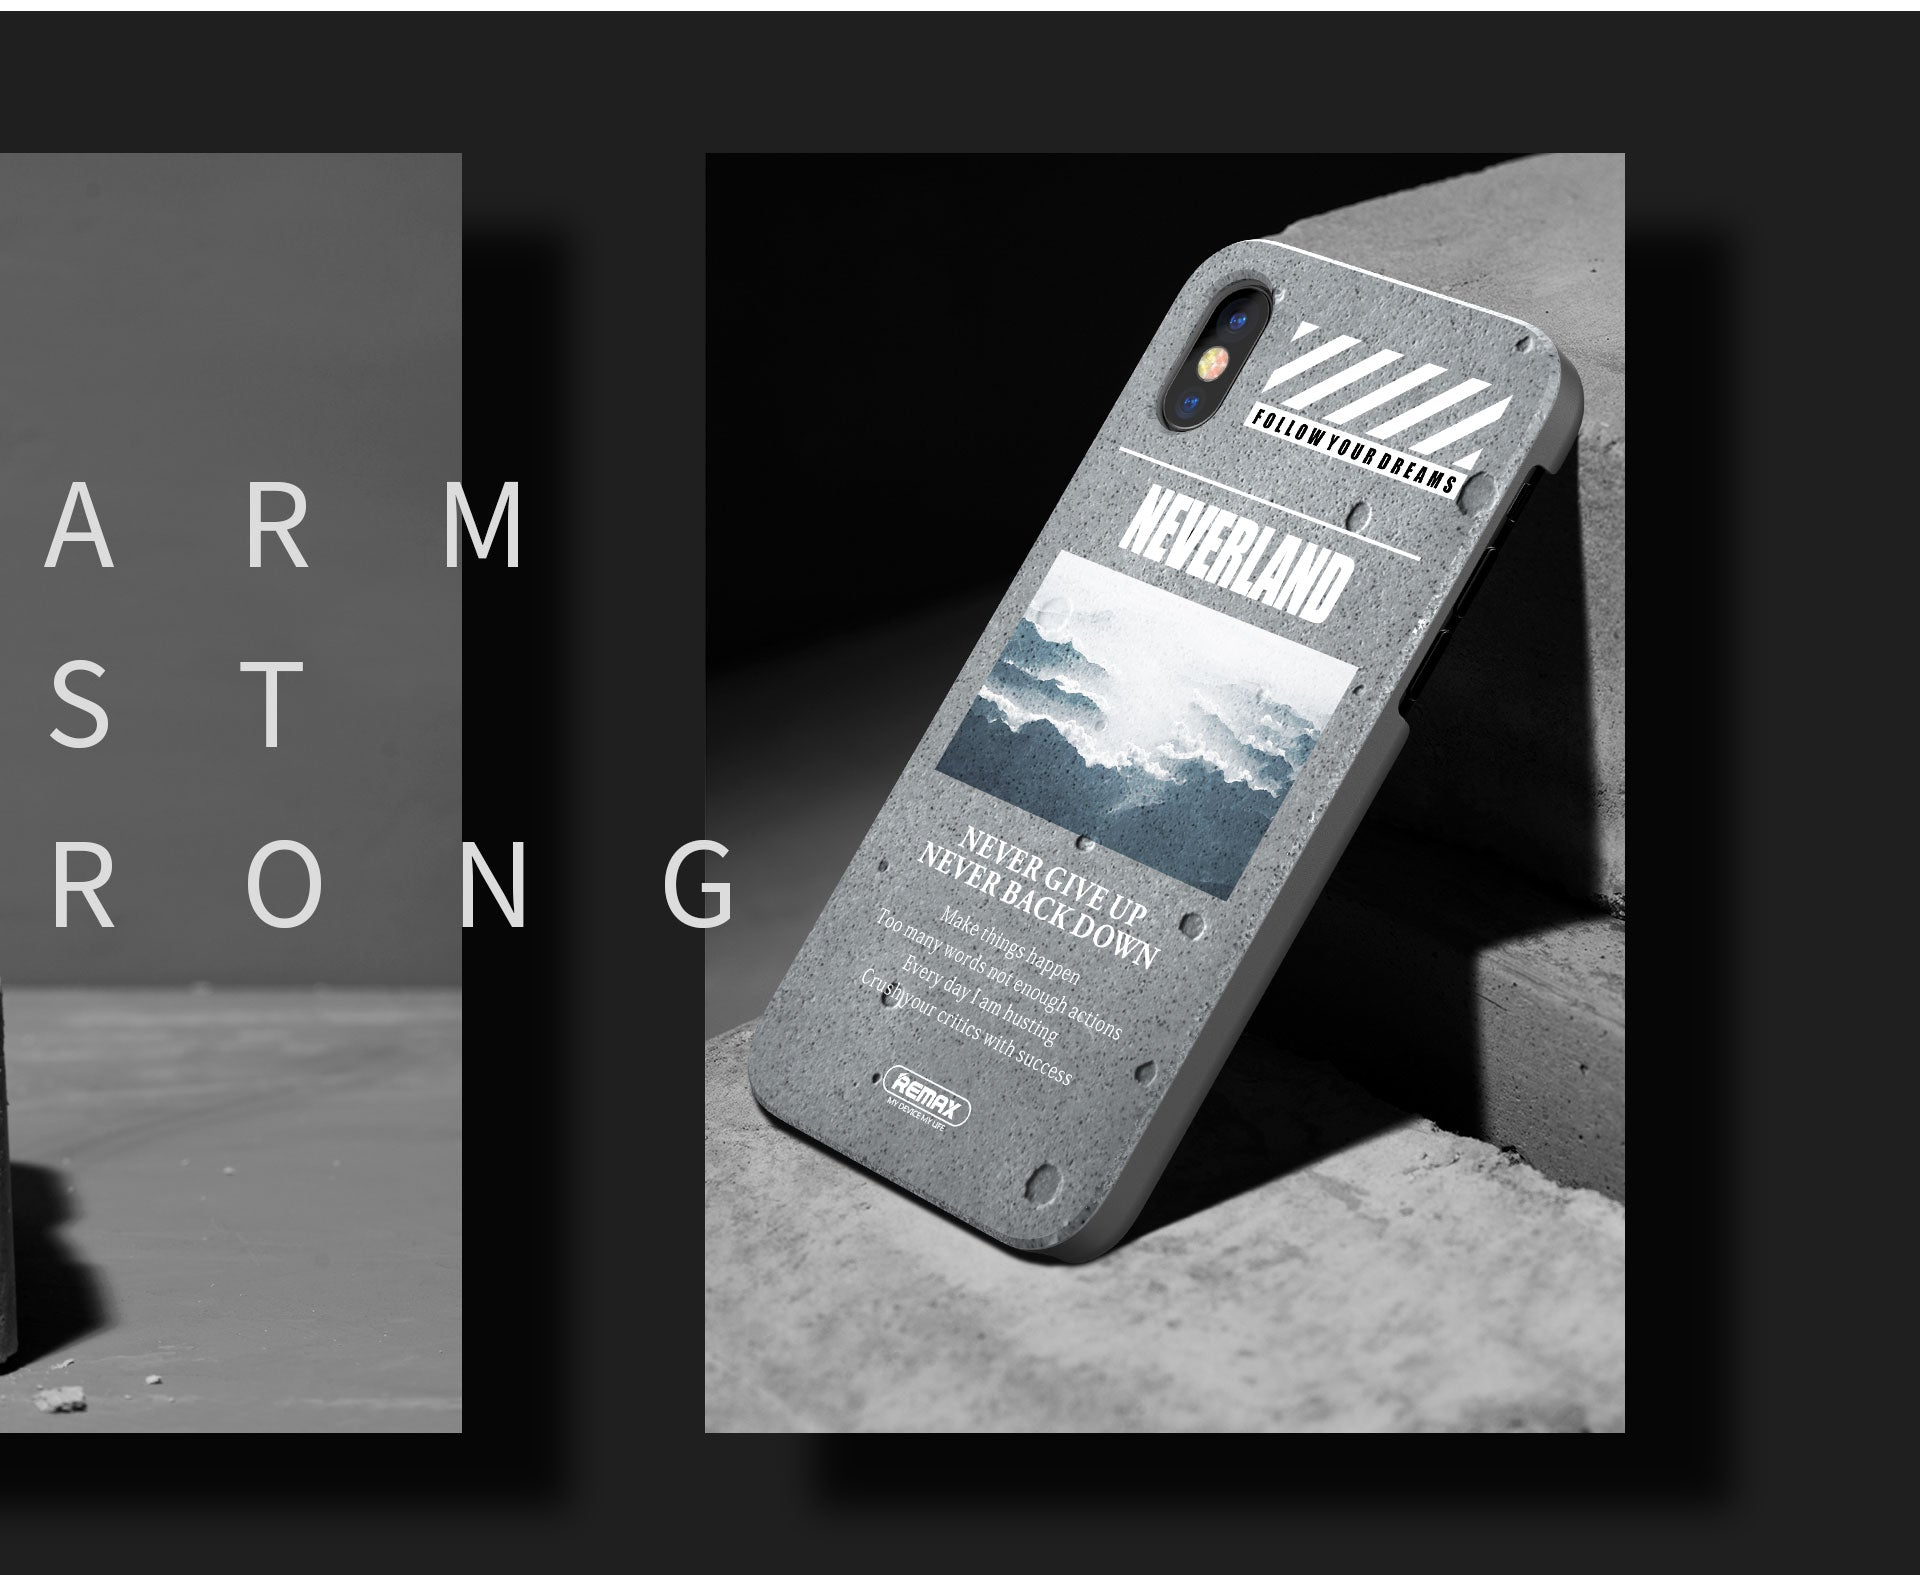 Armstone is the original & best super thin iPhone X case. It's designed to keep the original look of your iPhone X while still protecting it